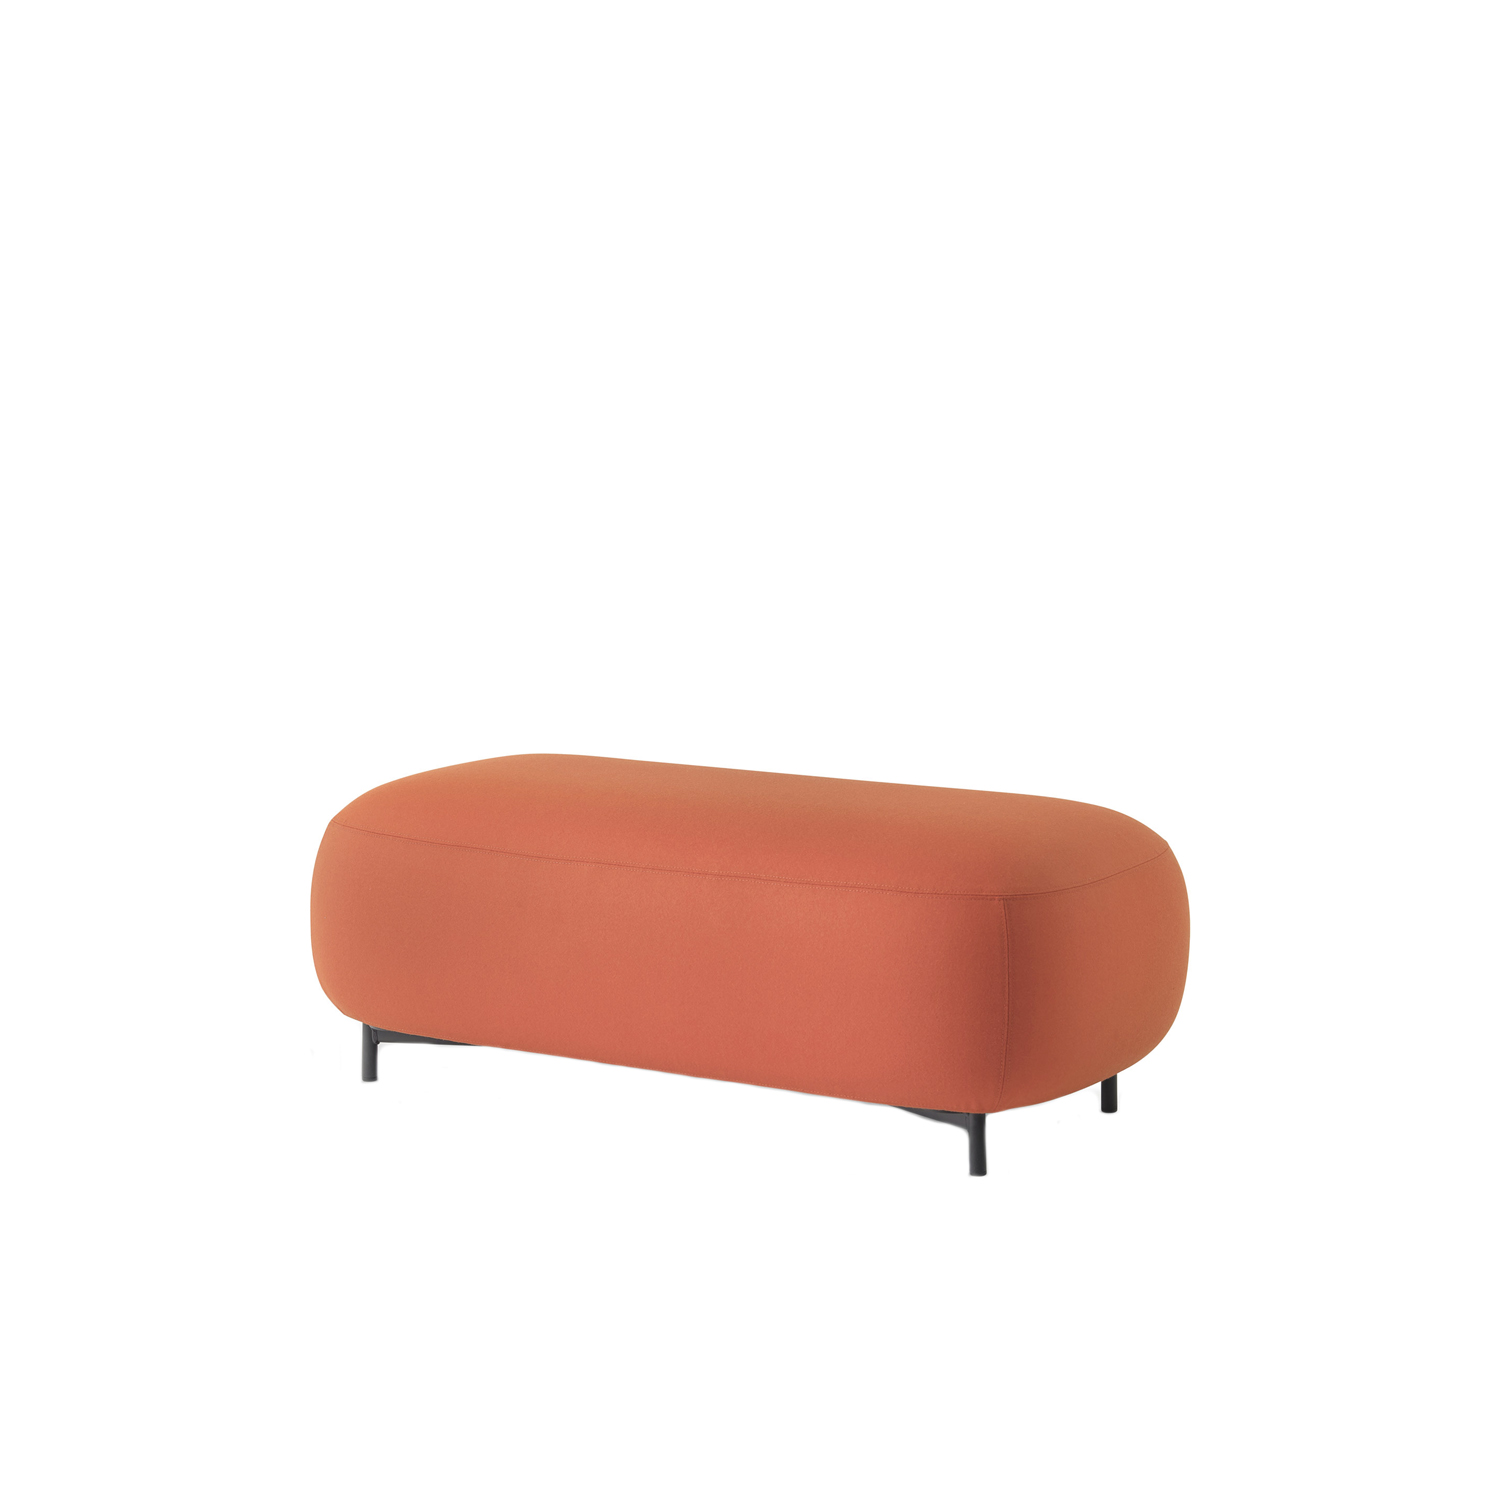 Buddy Pouf Long - Soft lines and clean design feature Buddy collection. The rounded shape of the pouf with a generous and comfortable upholstery is supported by four thin and rigorous legs Ø20mm. These make the pouf extremely functional and visually lift the volume from the ground. Height 400 mm.